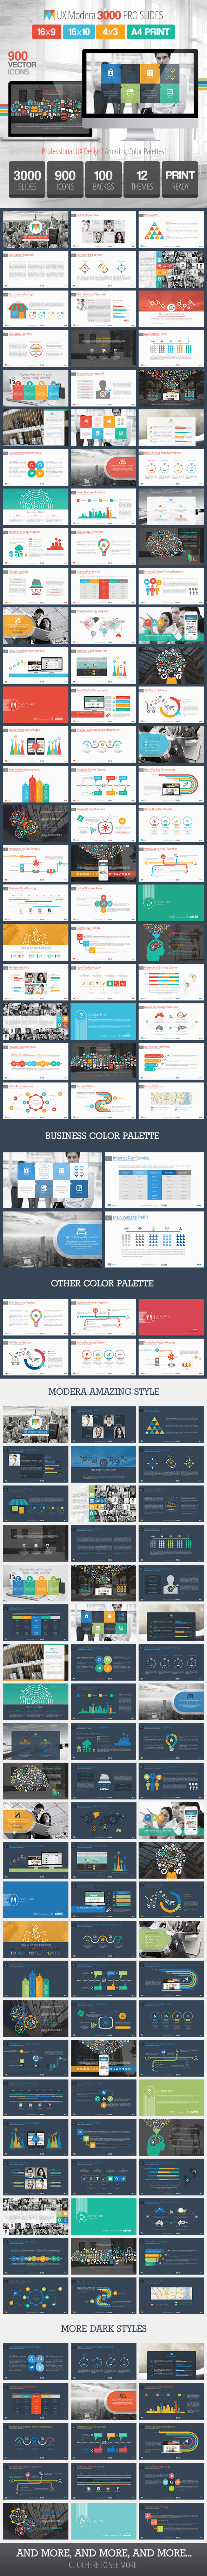 UX Modera Presentation Template for Keynote - Business Keynote Templates